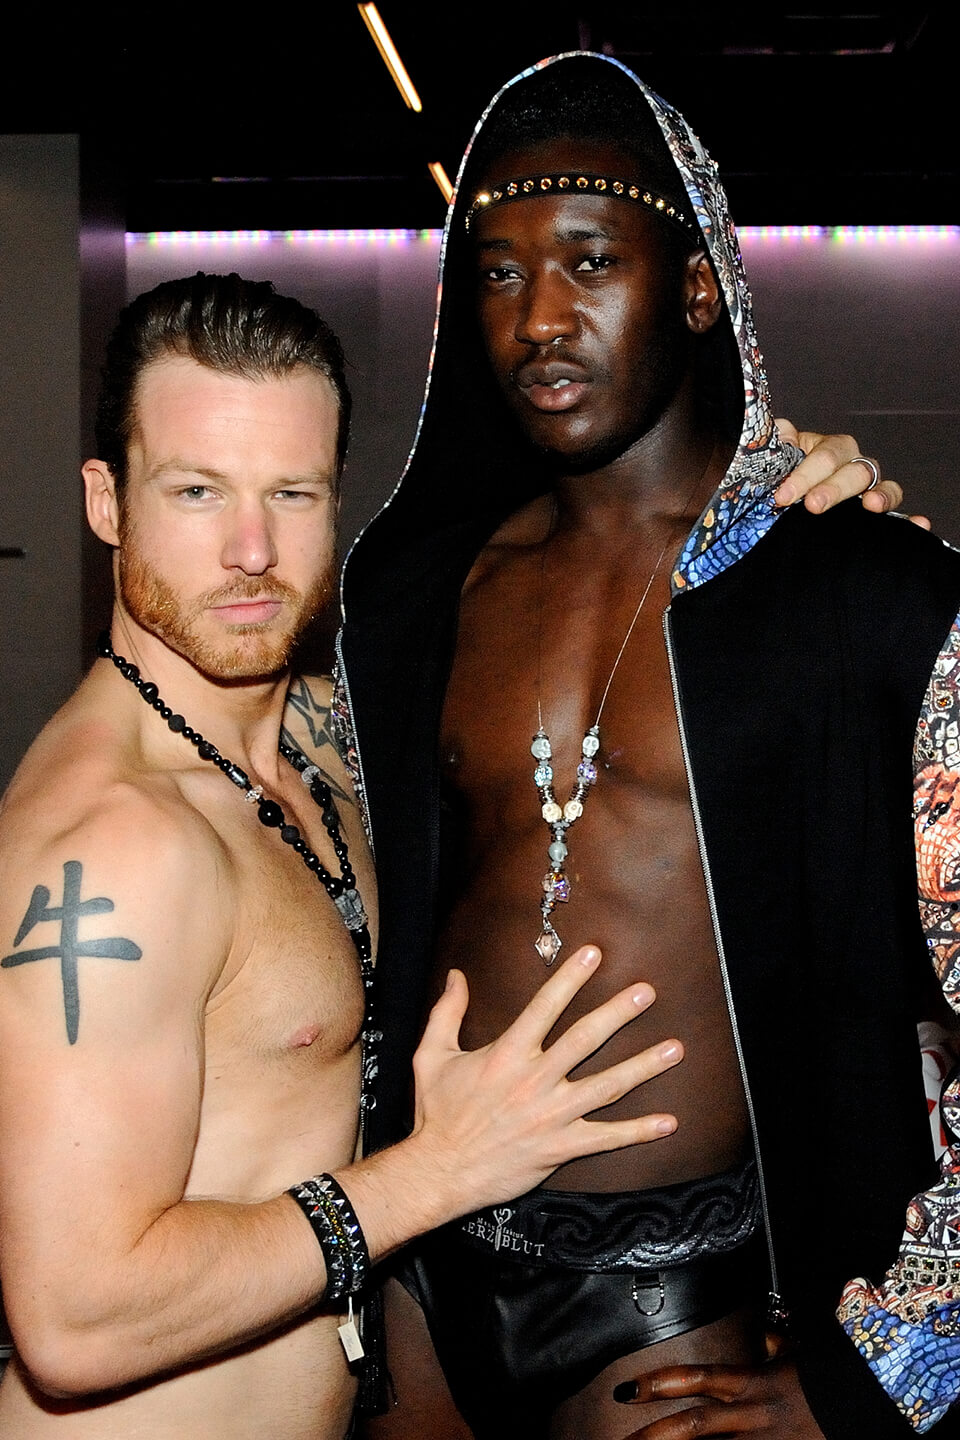 Posing with Mr Gay Germany